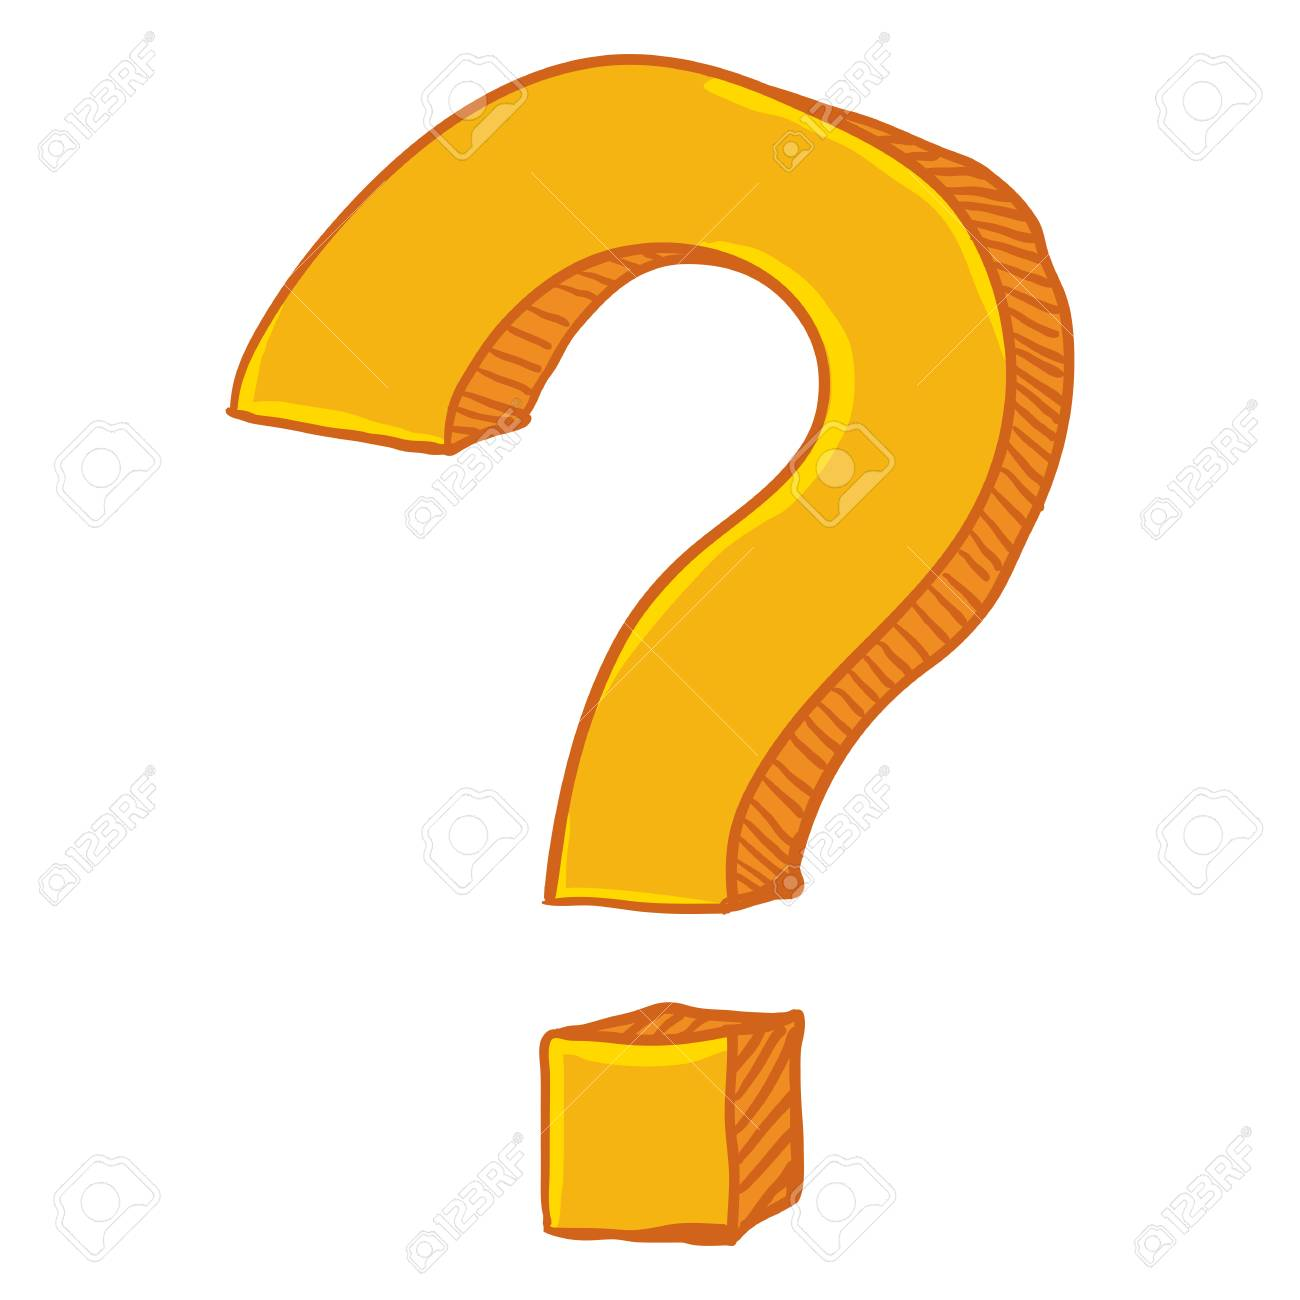 Vector Cartoon Yellow Doodle Question Mark on Isolated White Background - 91247923